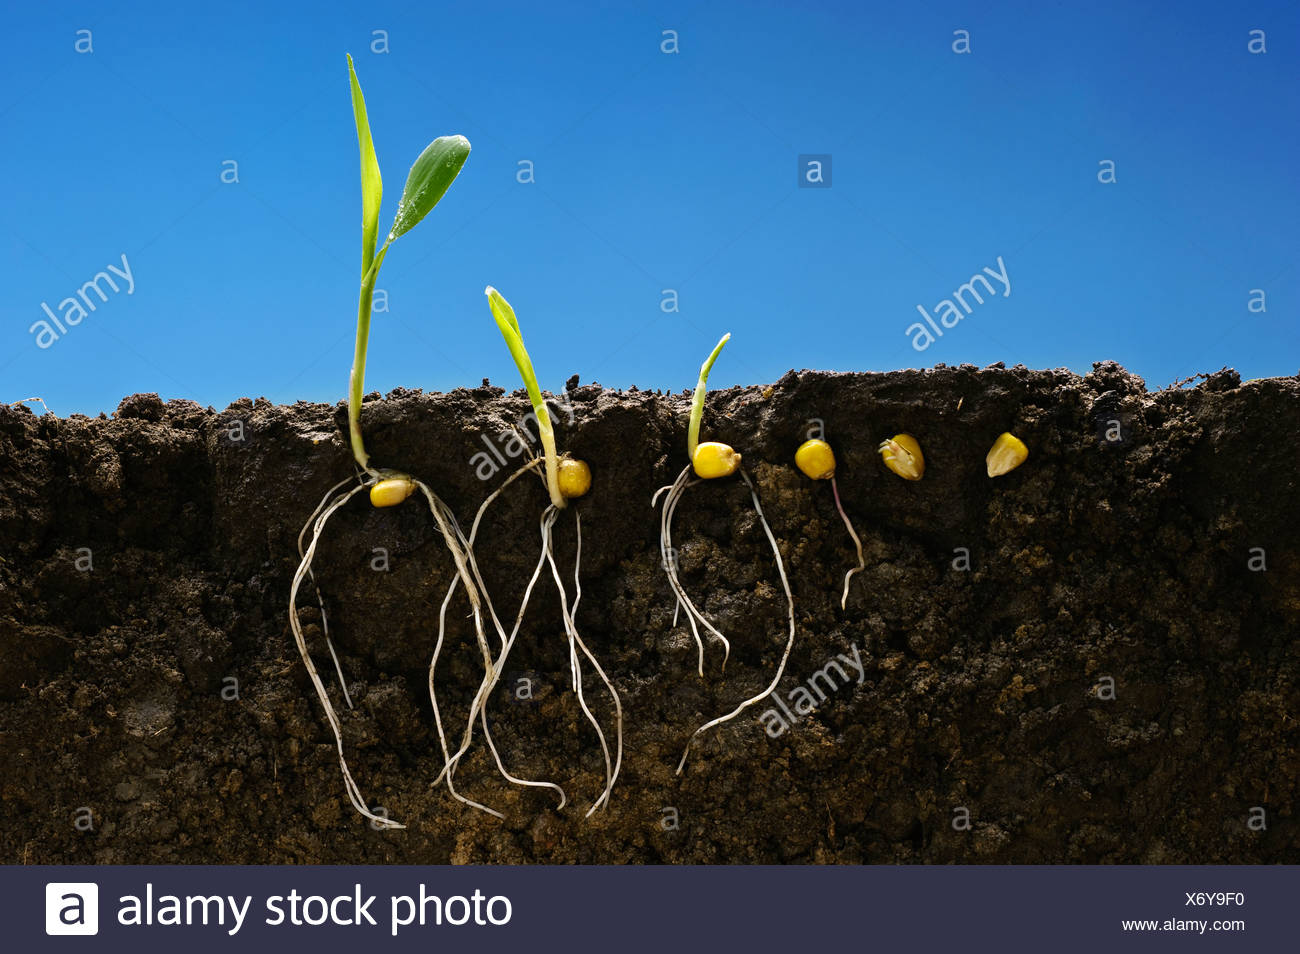 Grain corn early growth development stages showing root systems; left to right: six stages from seed stage to two-leaf stage. - Stock Image